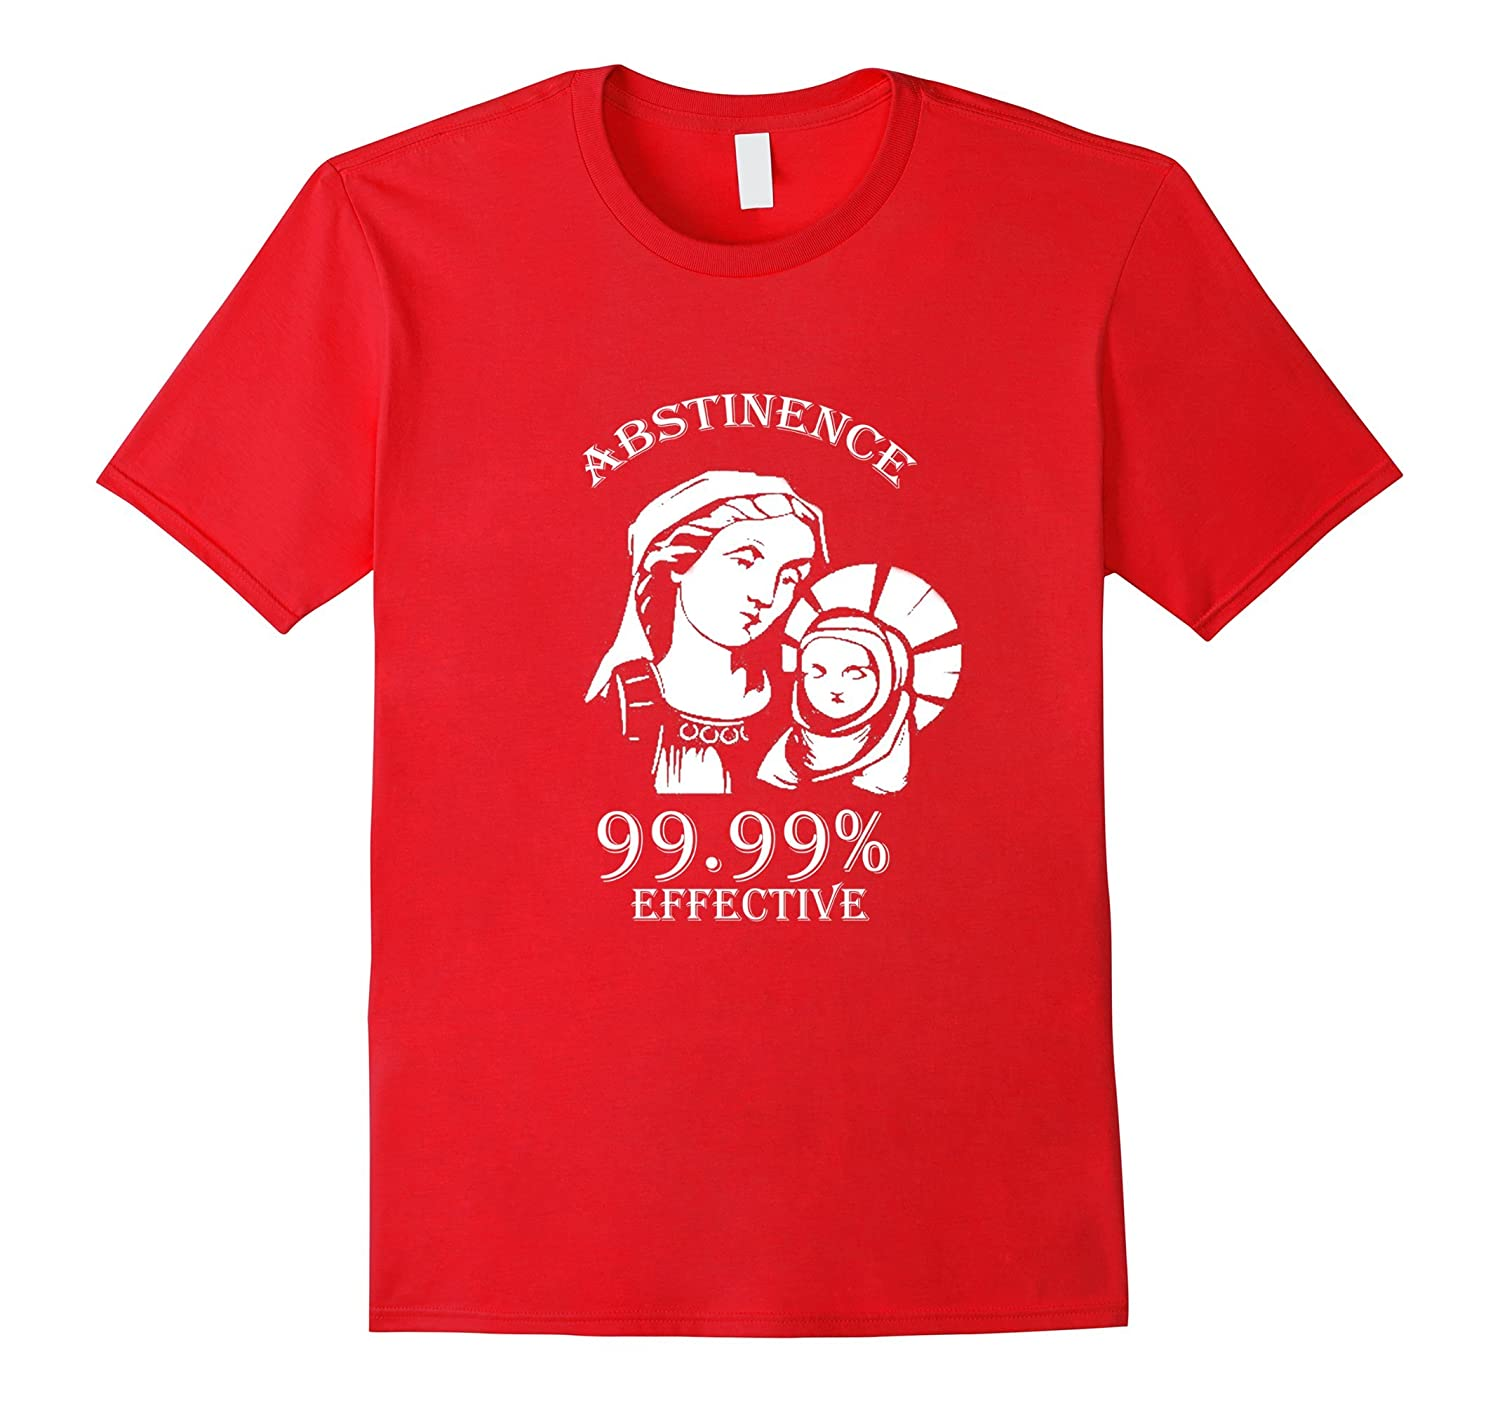 Abstinence 99.99% Effective Jesus funny Christmas t-shirt-Art